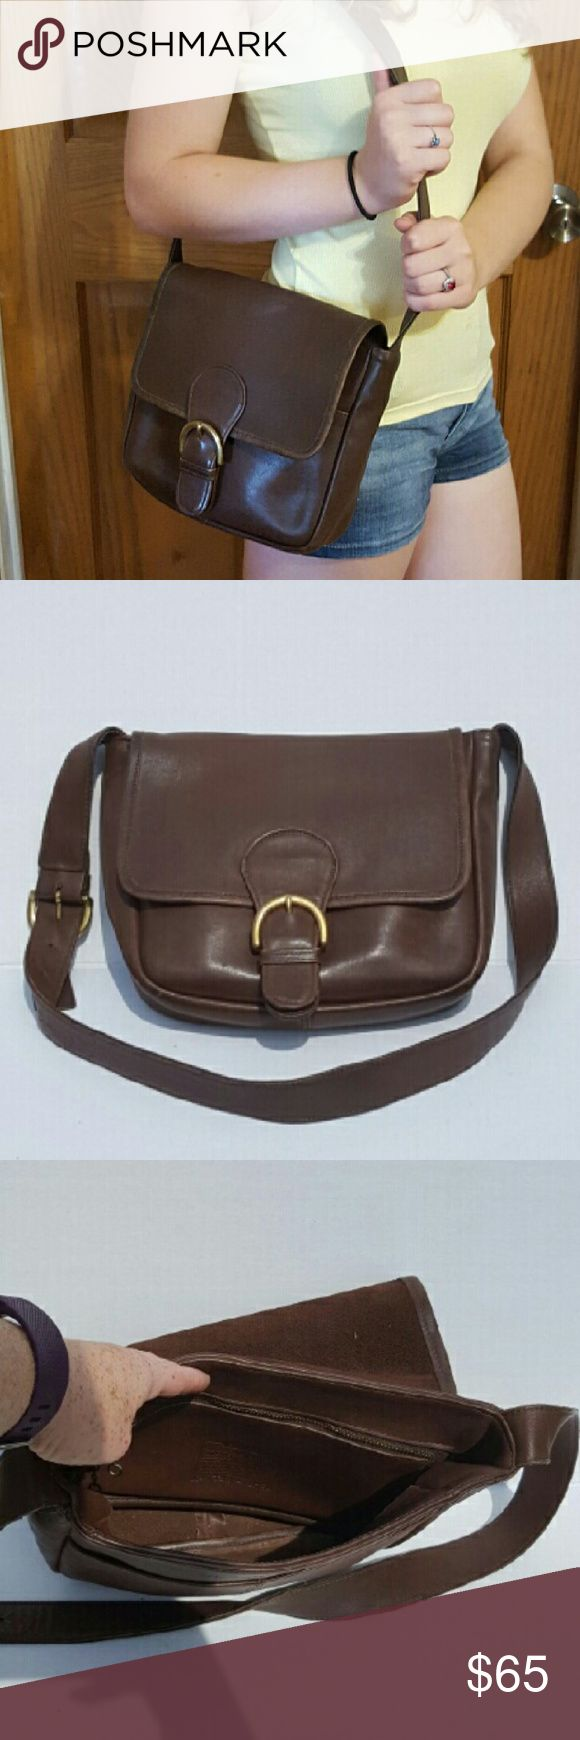 Vintage Coach Bedford Flap Bag Made in USA. Brown glove tanned leather, original Coach hangtag, brass hardware, and adjustable strap with 13 inch drop . Has magnetic snap closure and slip pocket on both the back of the bag and underneath the flap. Inside has one large main compartment and a zippered privacy pocket. It does have some where is pictured in the last picture of us do to loving use. Measures approximately 9(L)x 9.5 (H)x 3 (D) Style No. 4164 Coach Bags Shoulder Bags